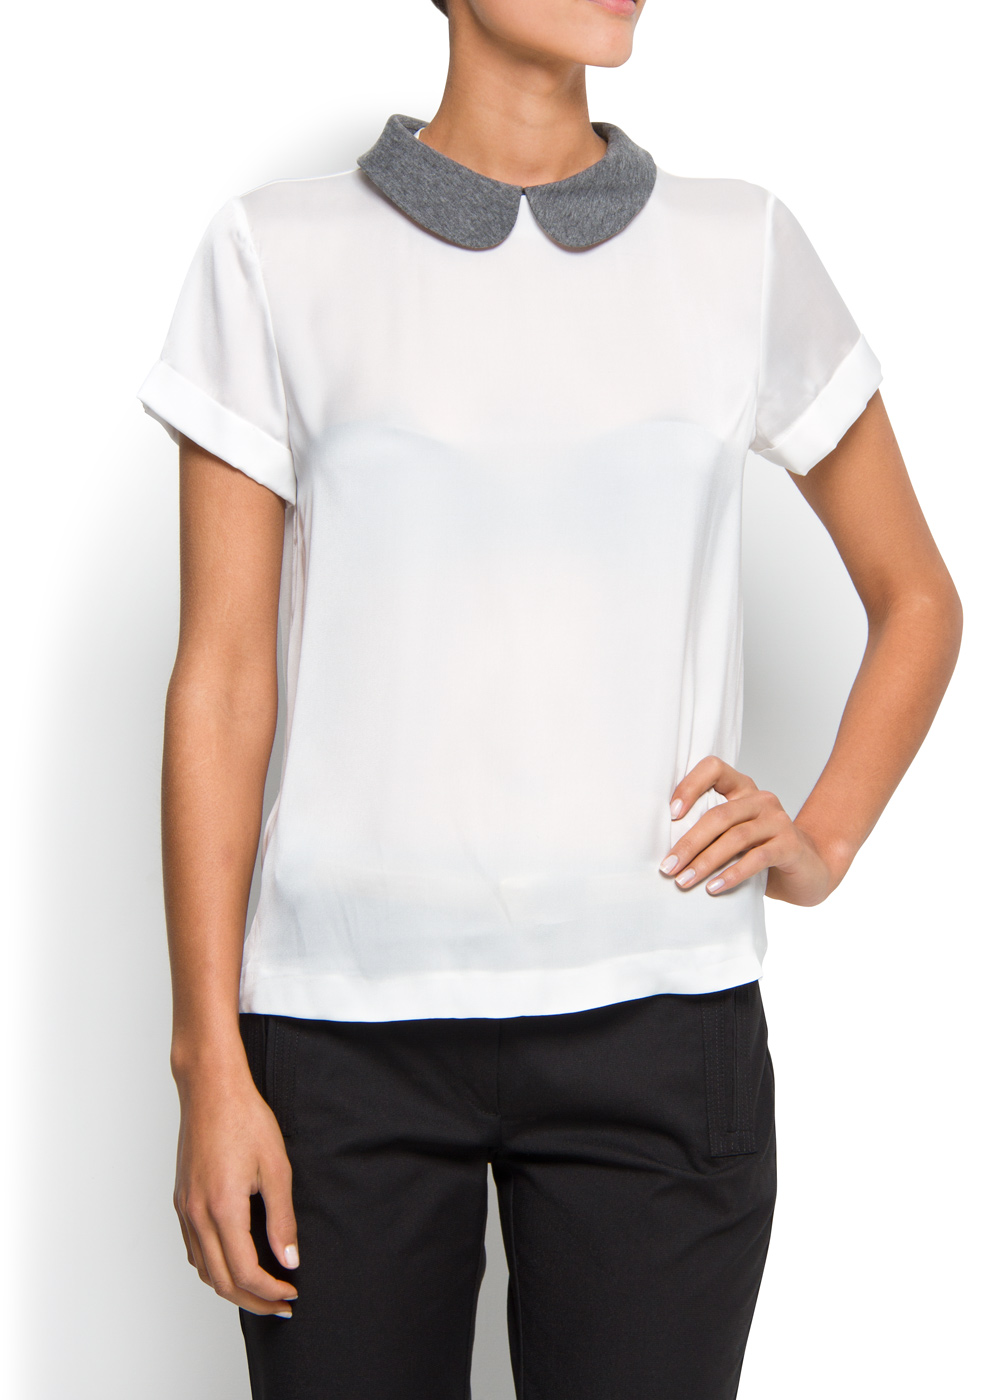 Womens Peter Pan Collar Blouse White 109